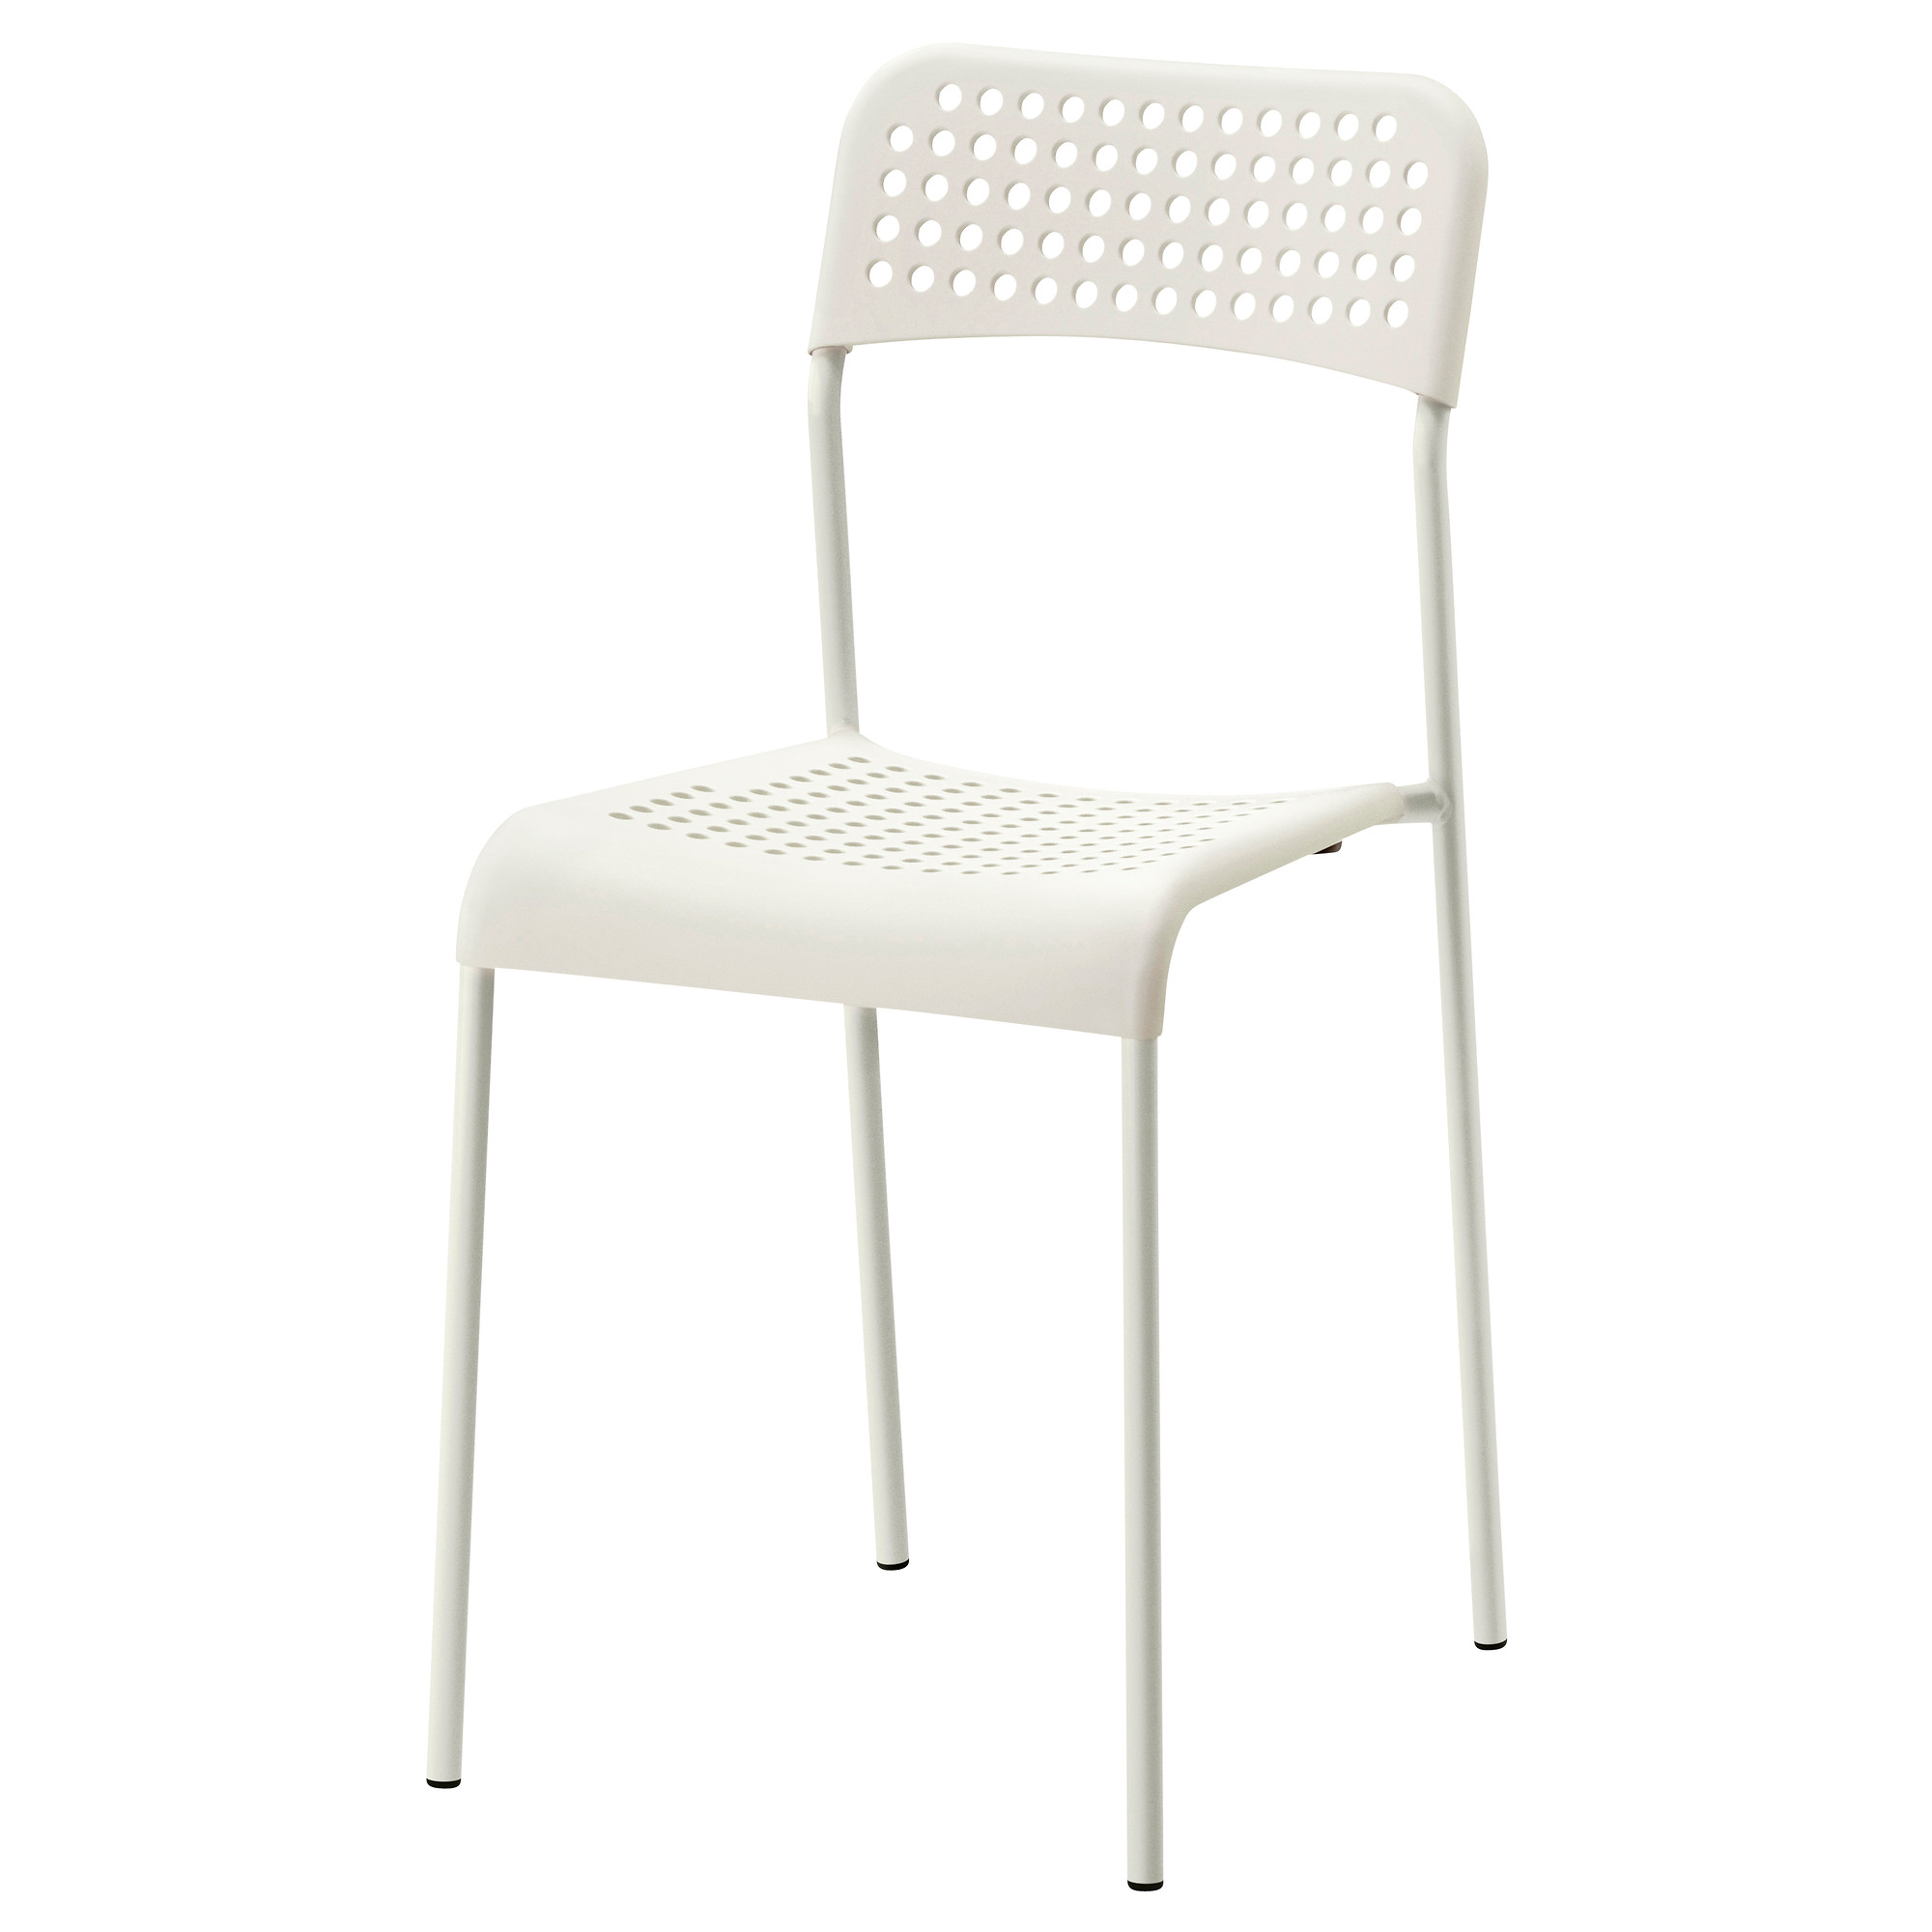 White Stackable Chairs Adde